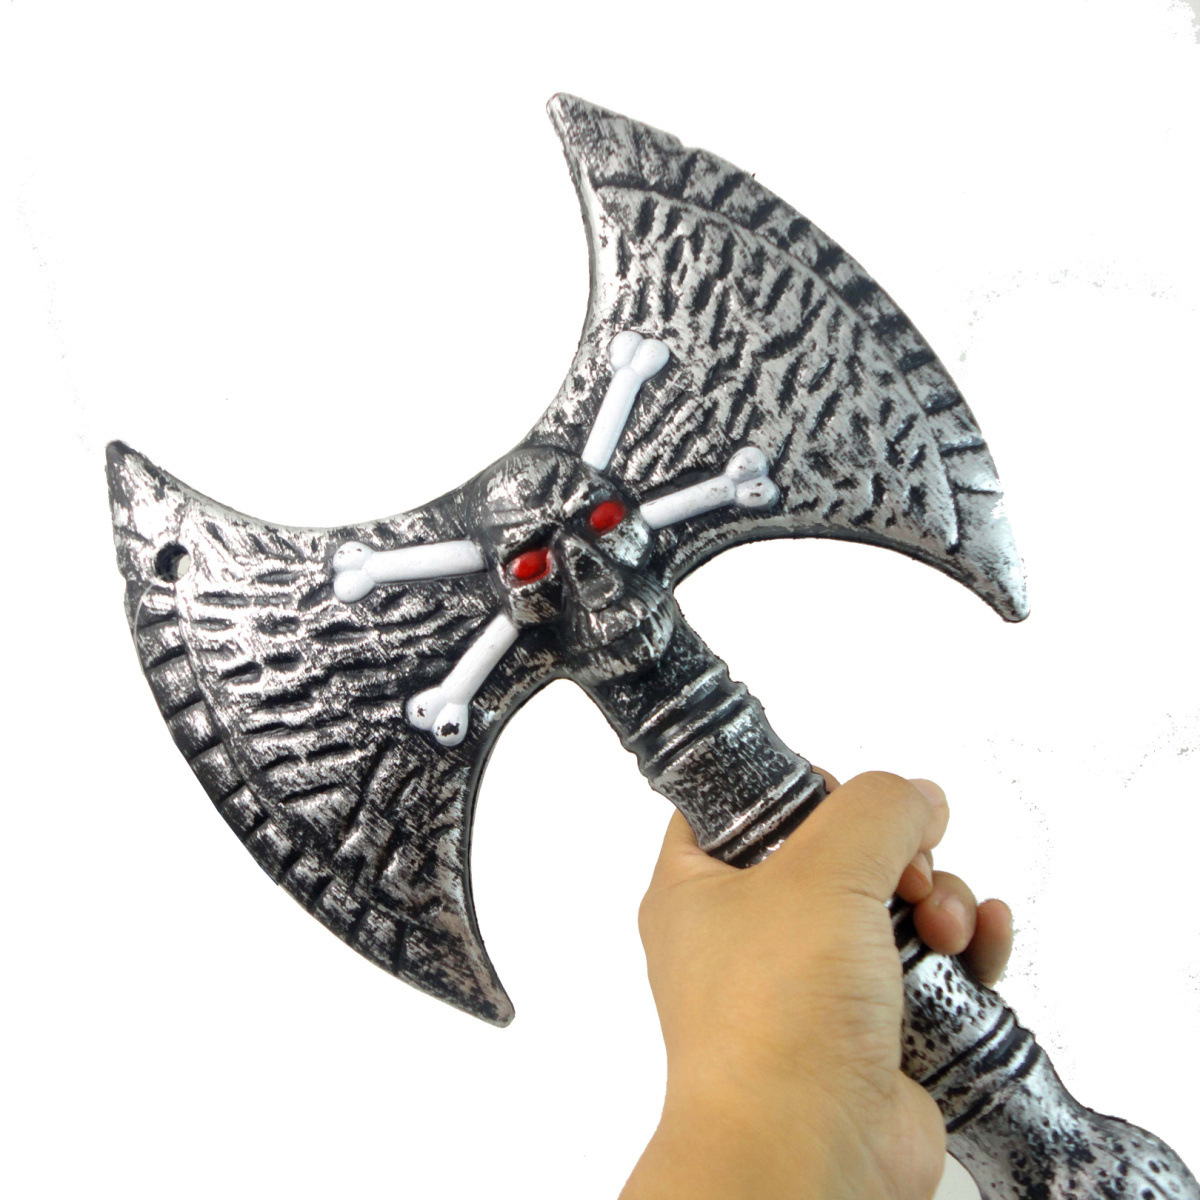 Halloween Masquerade Party Supplies Weapons Equipment Ghost Pattern Axe Props Fancy Toy For Kids Boys Gift life size scary severed head party decoration haunted house halloween props